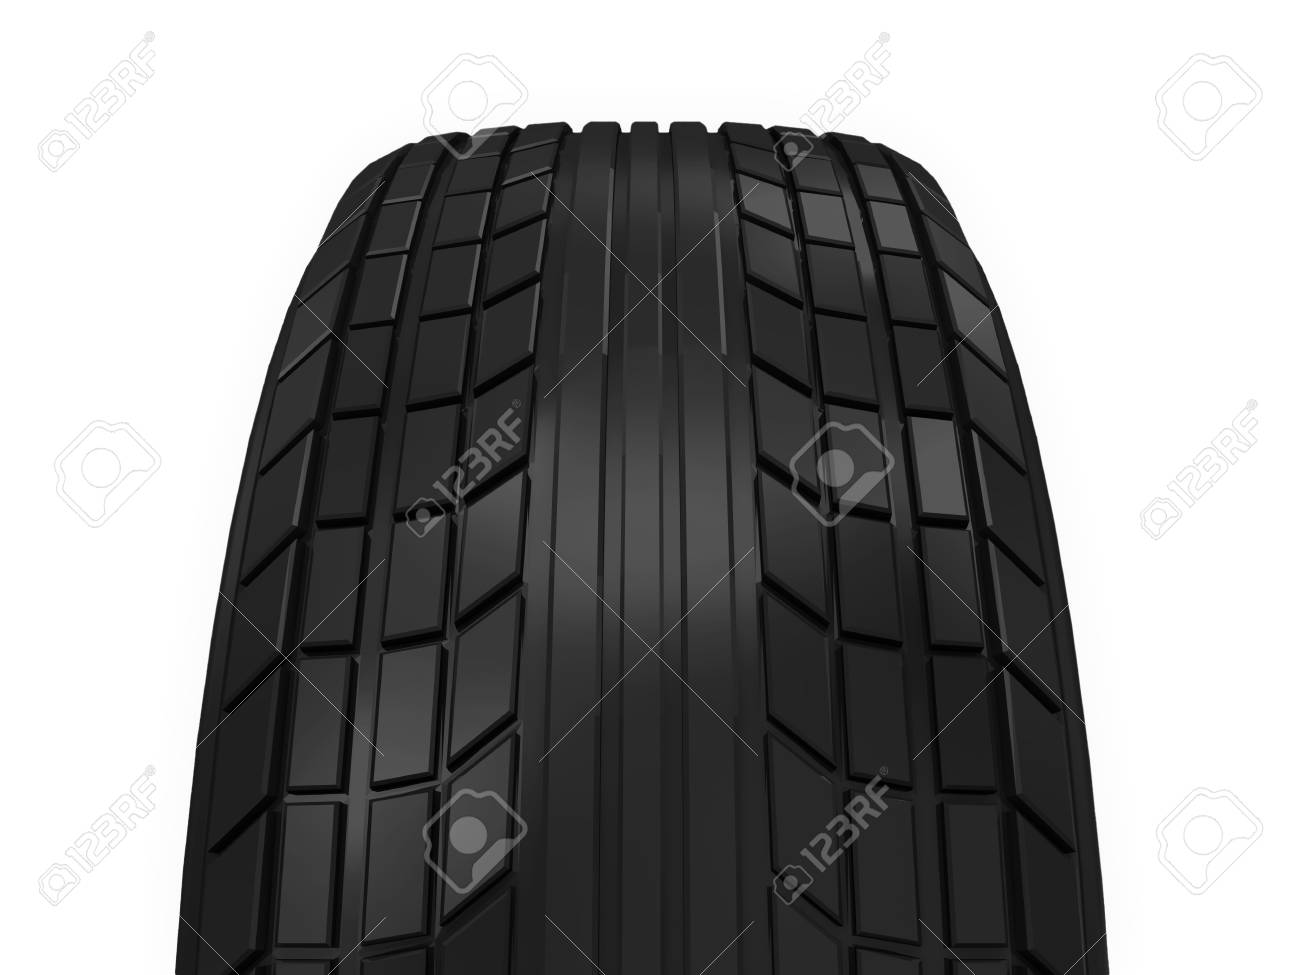 Car Tire isolated on white background Stock Photo - 20055096